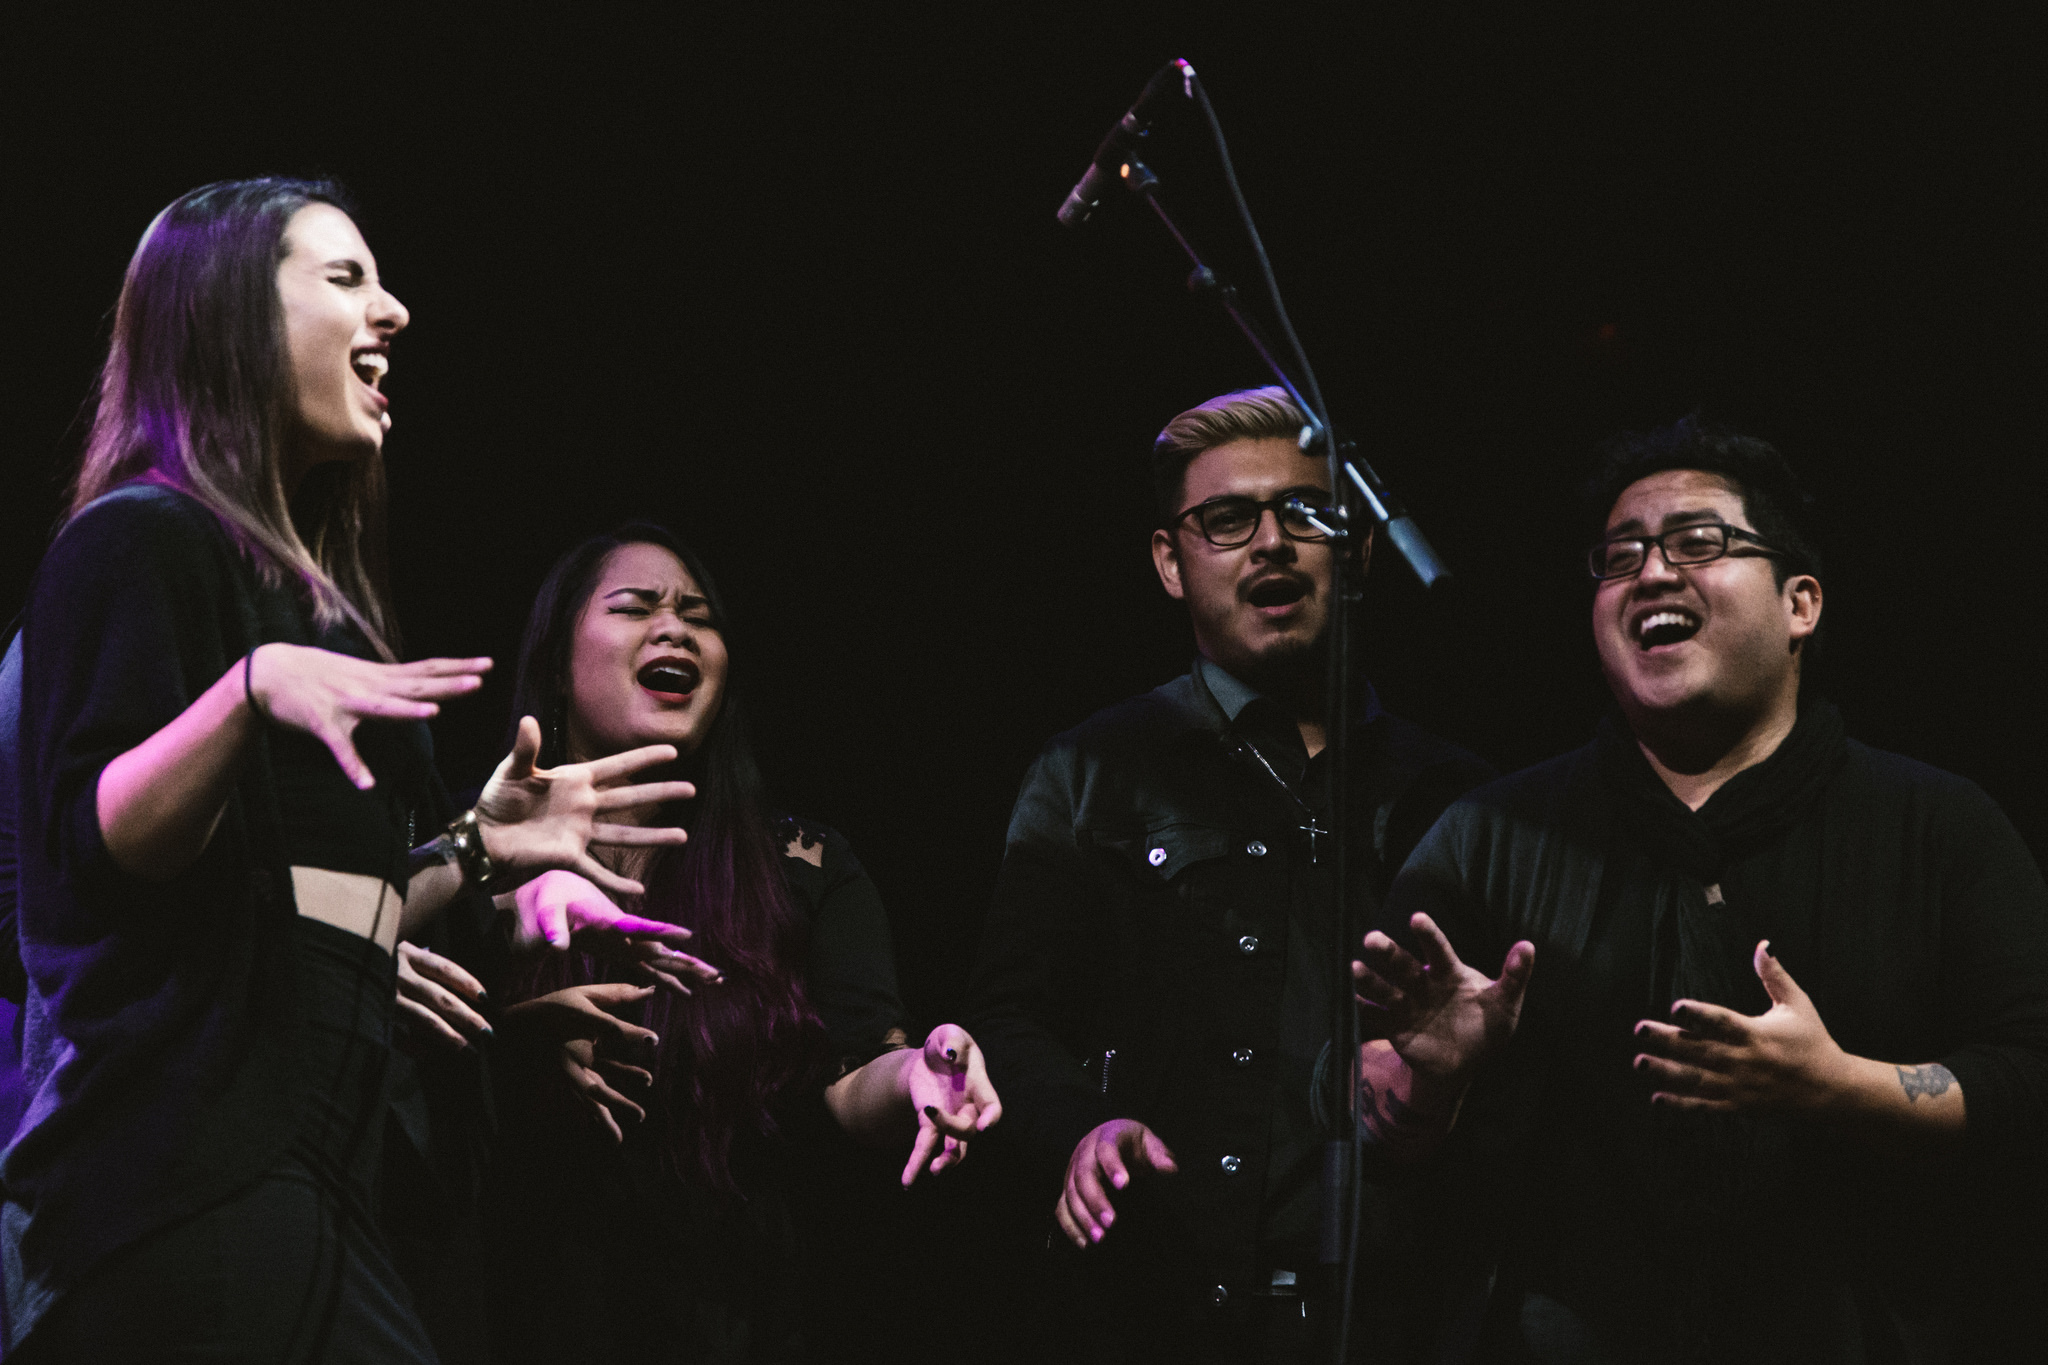 Top Shelf Vocal performs at the Belasco Theater at an event for the American Speech-Language-Hearing Foundation